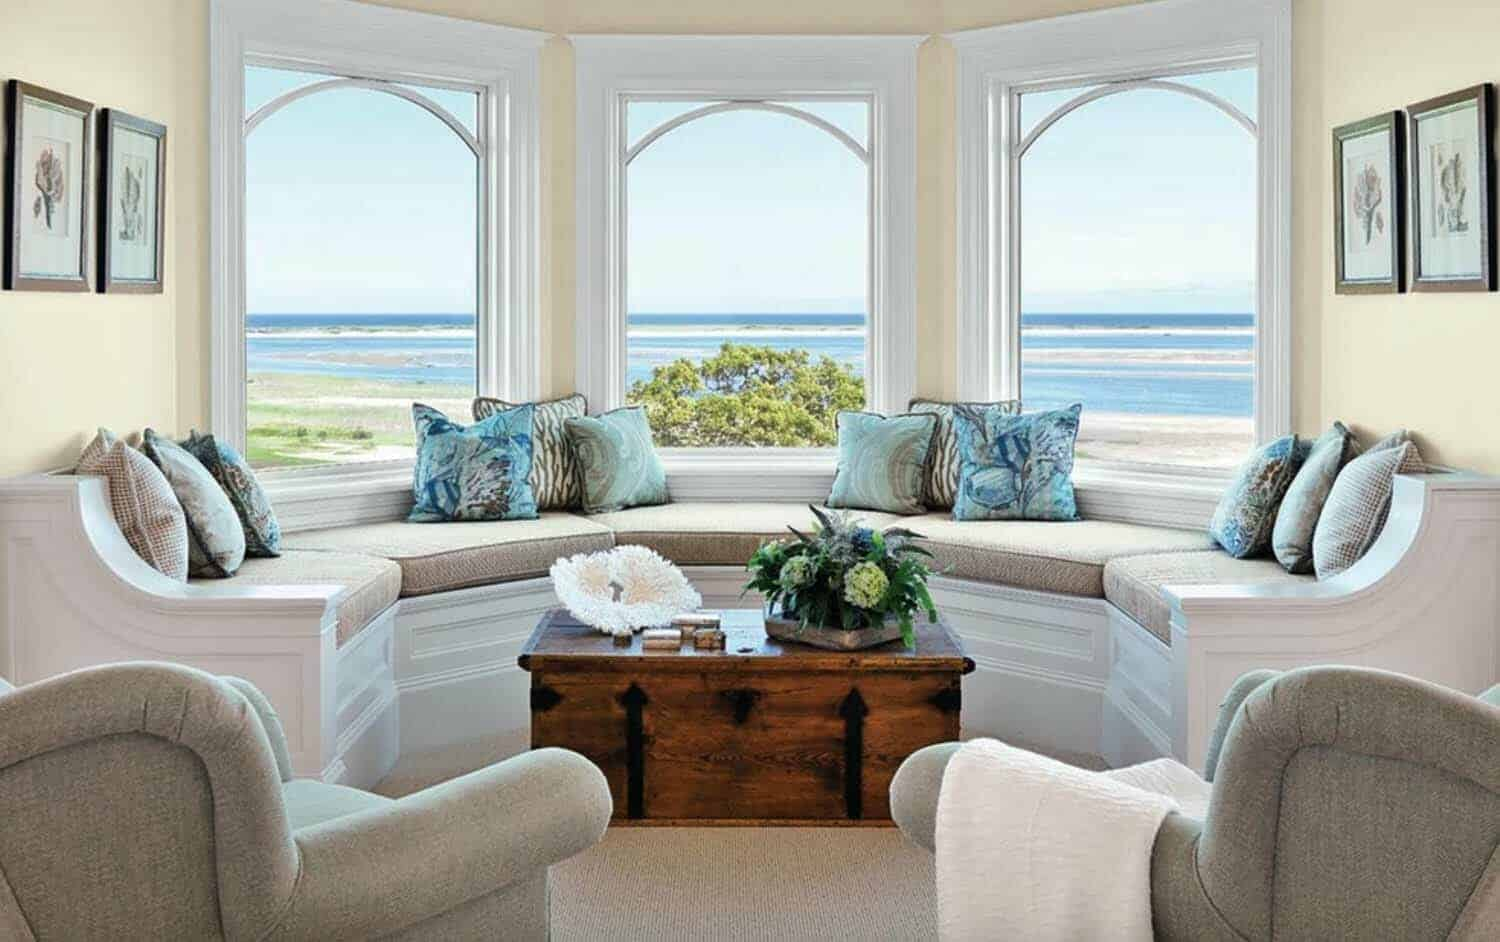 33 Amazing Built In Window Seats Capturing Mesmerizing Ocean Views